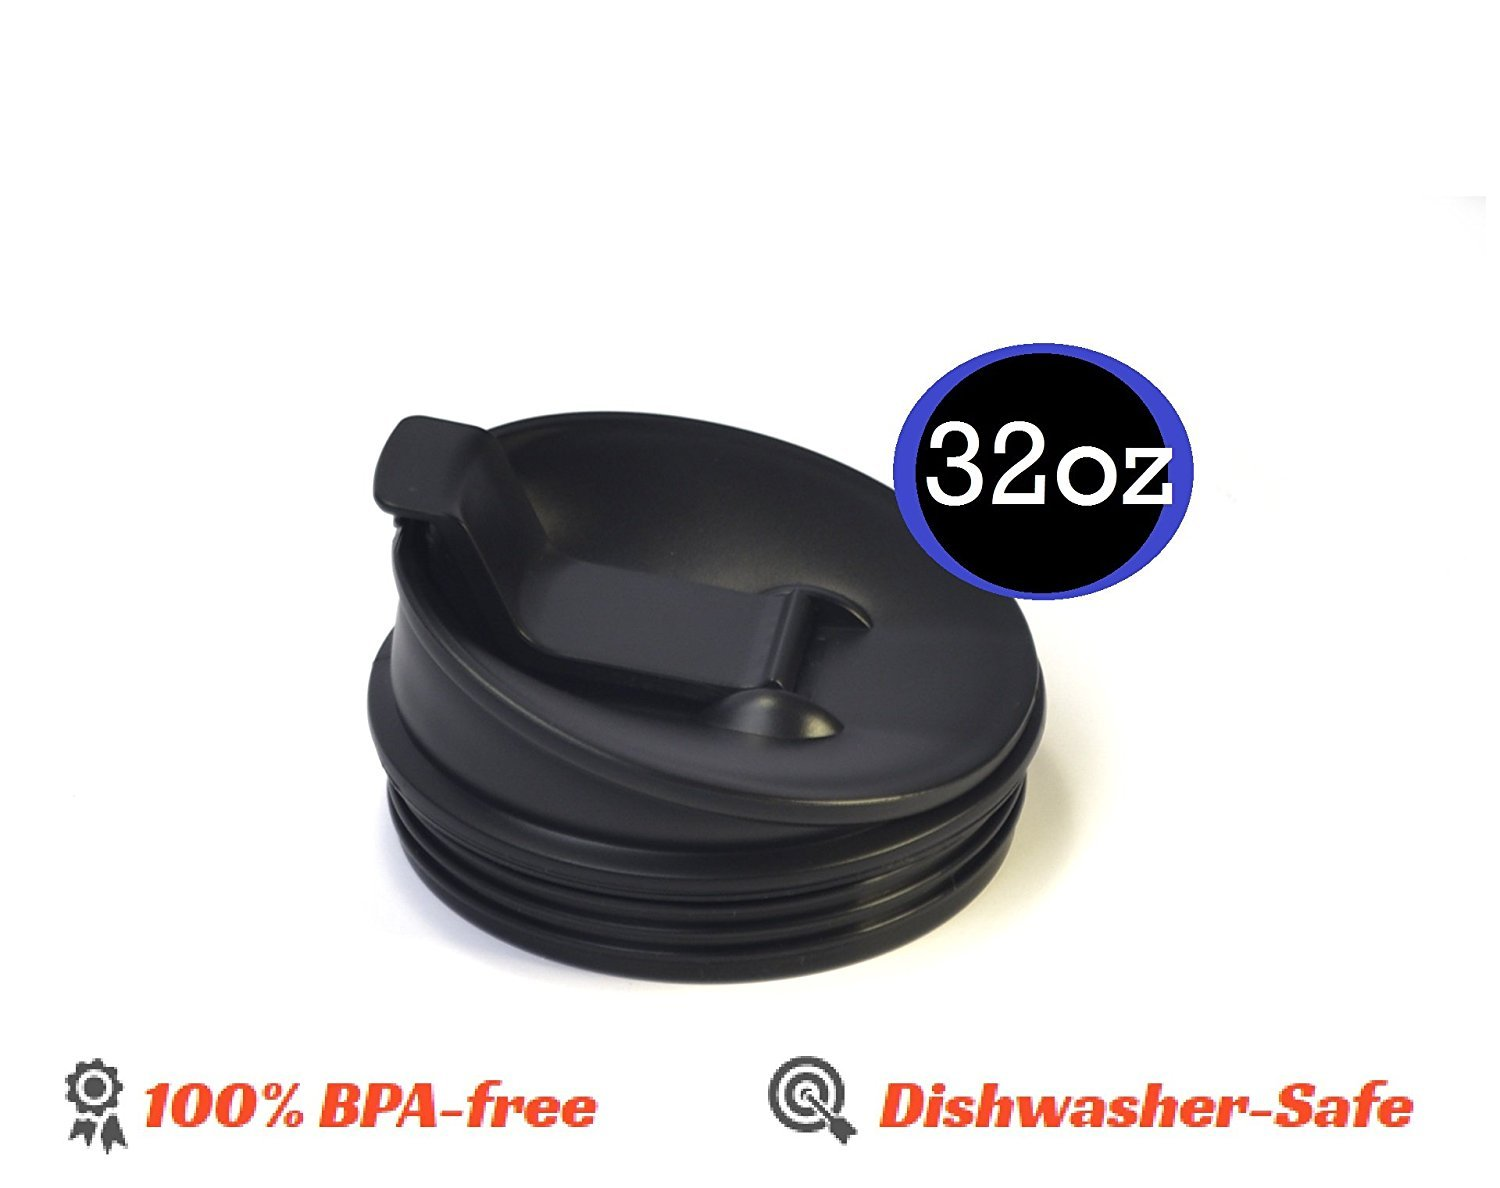 32OZ Large Multi-Serve Cup with Sip And Seal Lid replacement part for Nutri NutriNinja Auto iQ by Enbizio (Image #3)